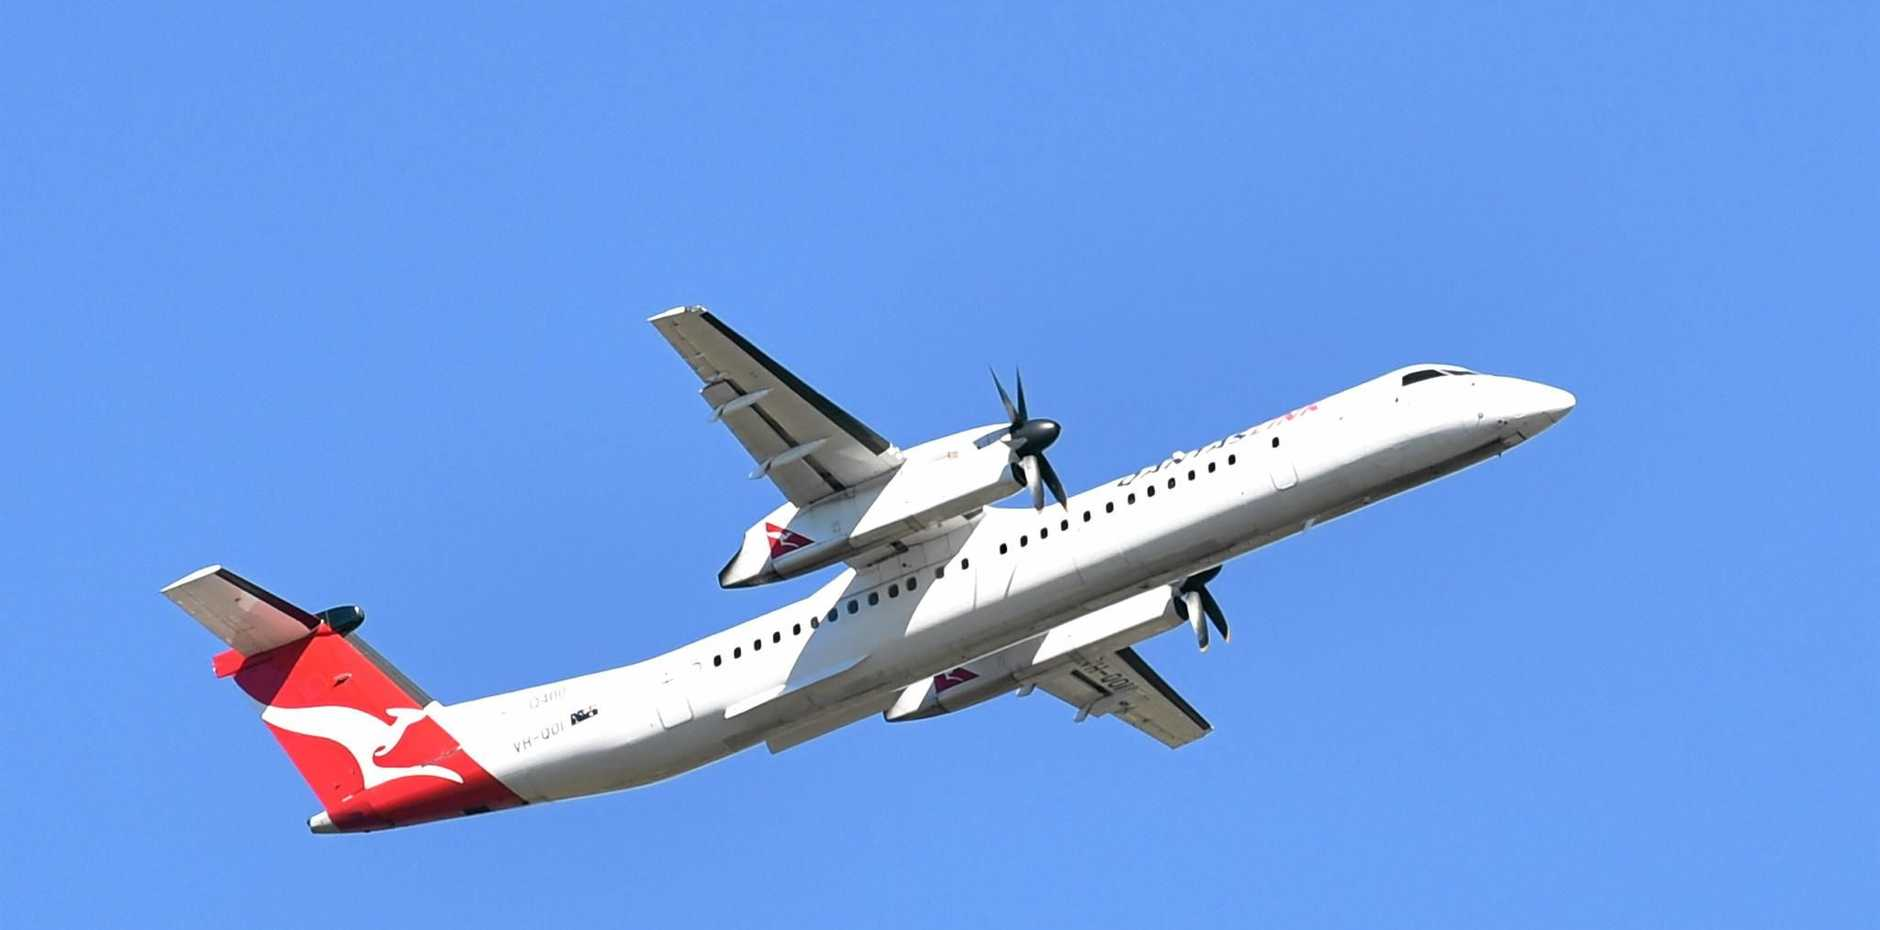 FLIGHT TROUBLE: A Qantaslink aircraft from Sydney made a priority landing in Coffs Harbour last night after reports of instrument failure.